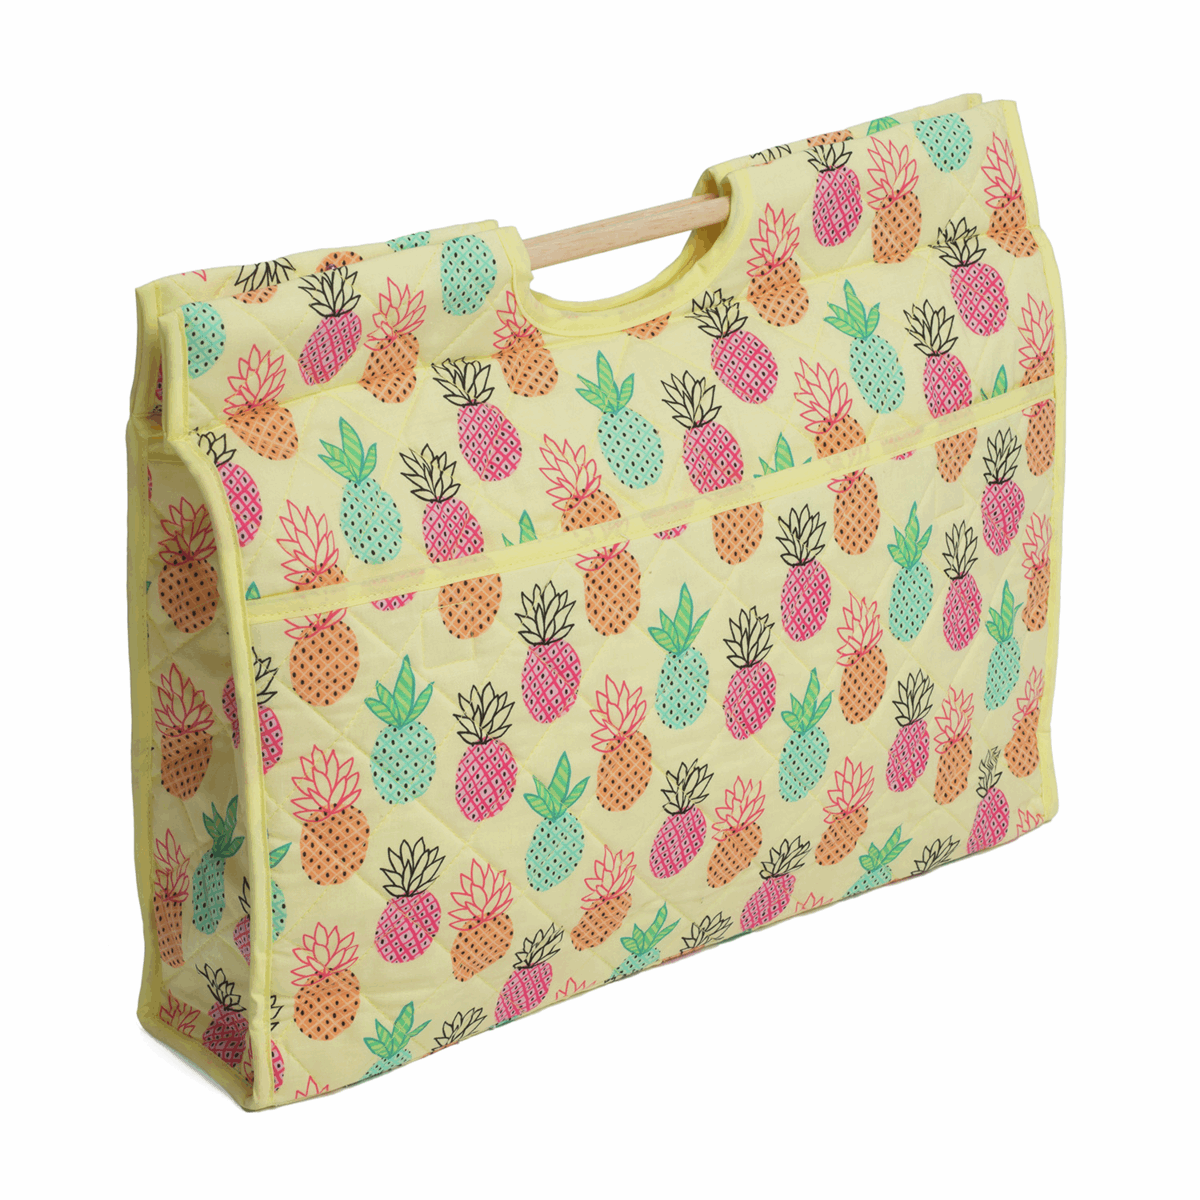 Picture of Craft Bag with Wooden Handles: Pineapple